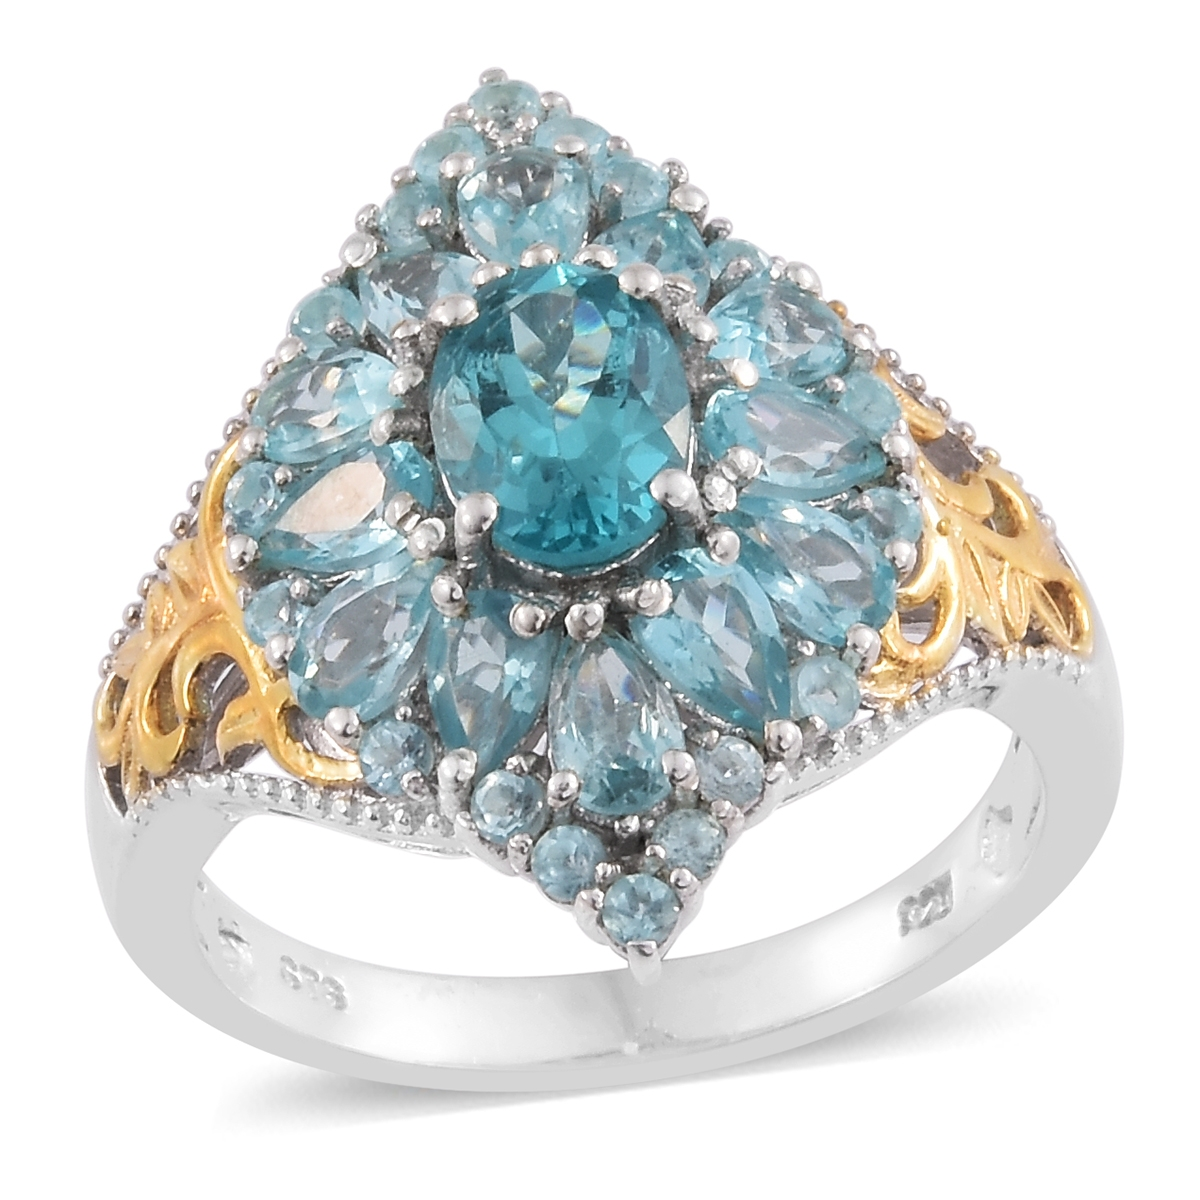 Apatite 14K Yellow Gold and Platinum Plated Silver Ring 3.34 cttw. by Shop LC